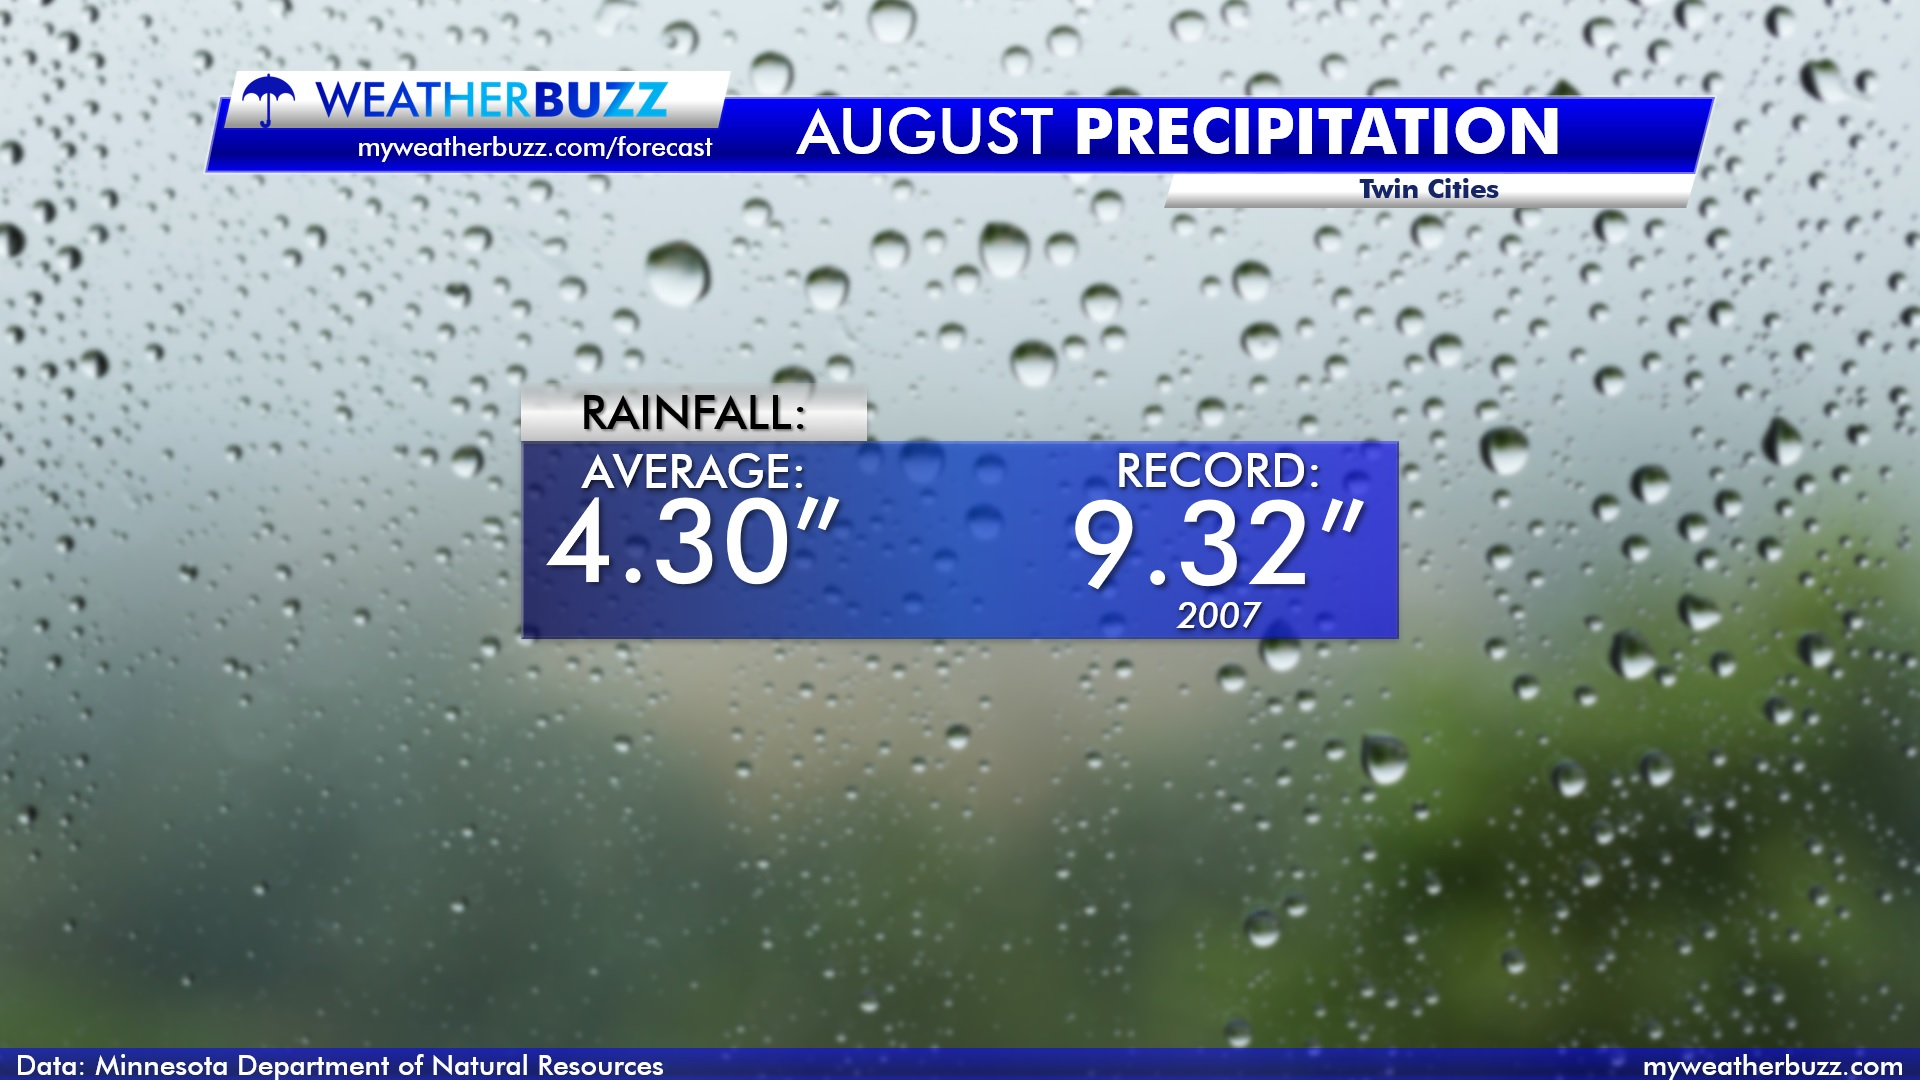 Precipitation Stats for the Twin Cities